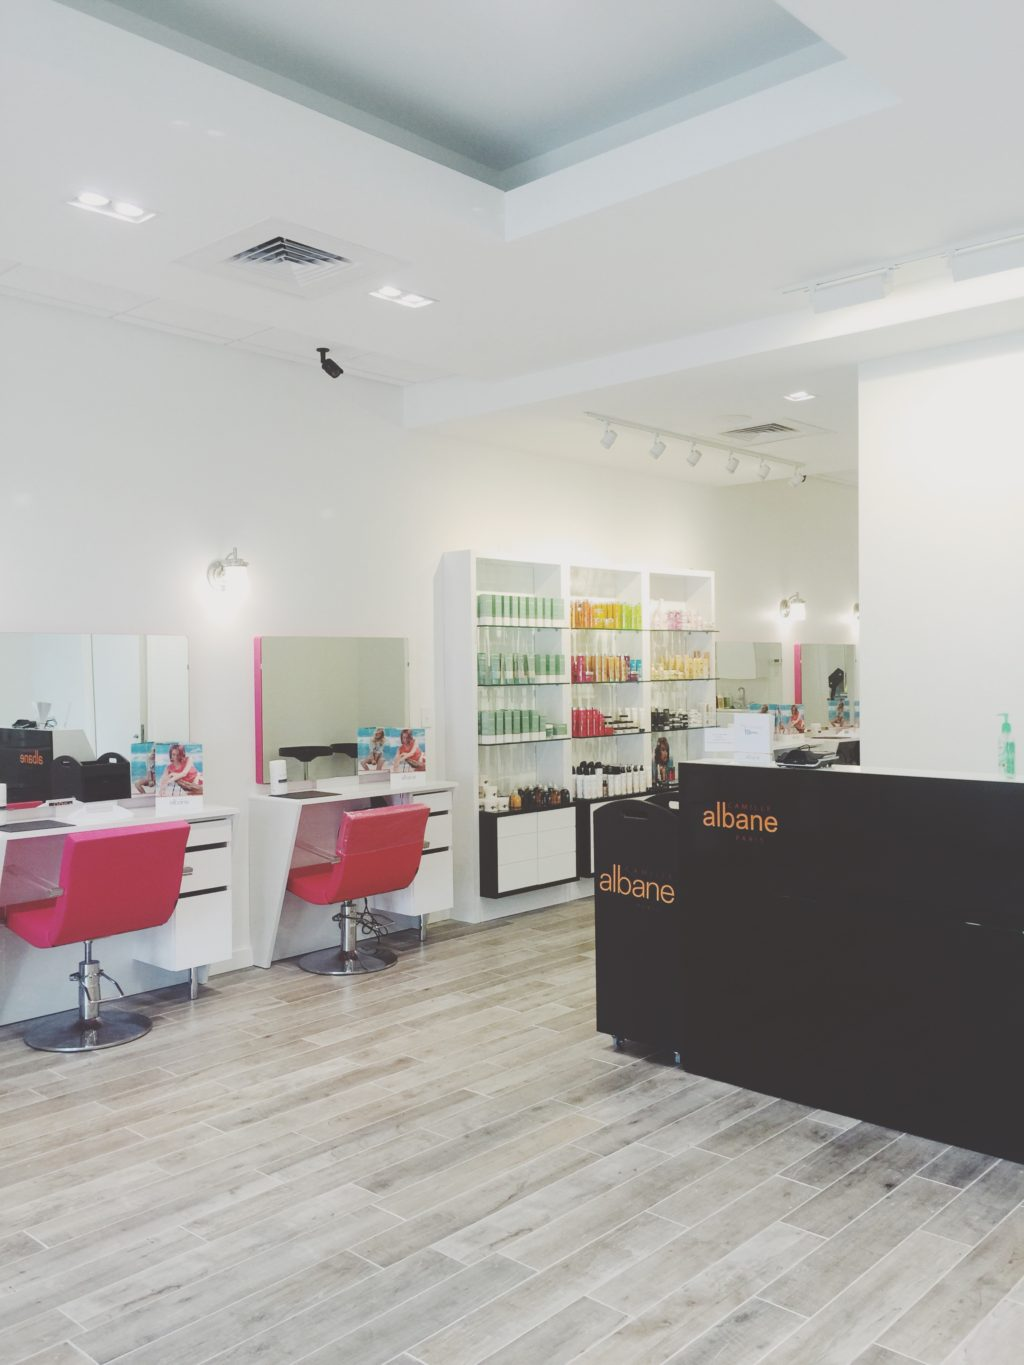 Camille Albane Upscale Hair Salon Opens in Dallas | Stephanie Drenka